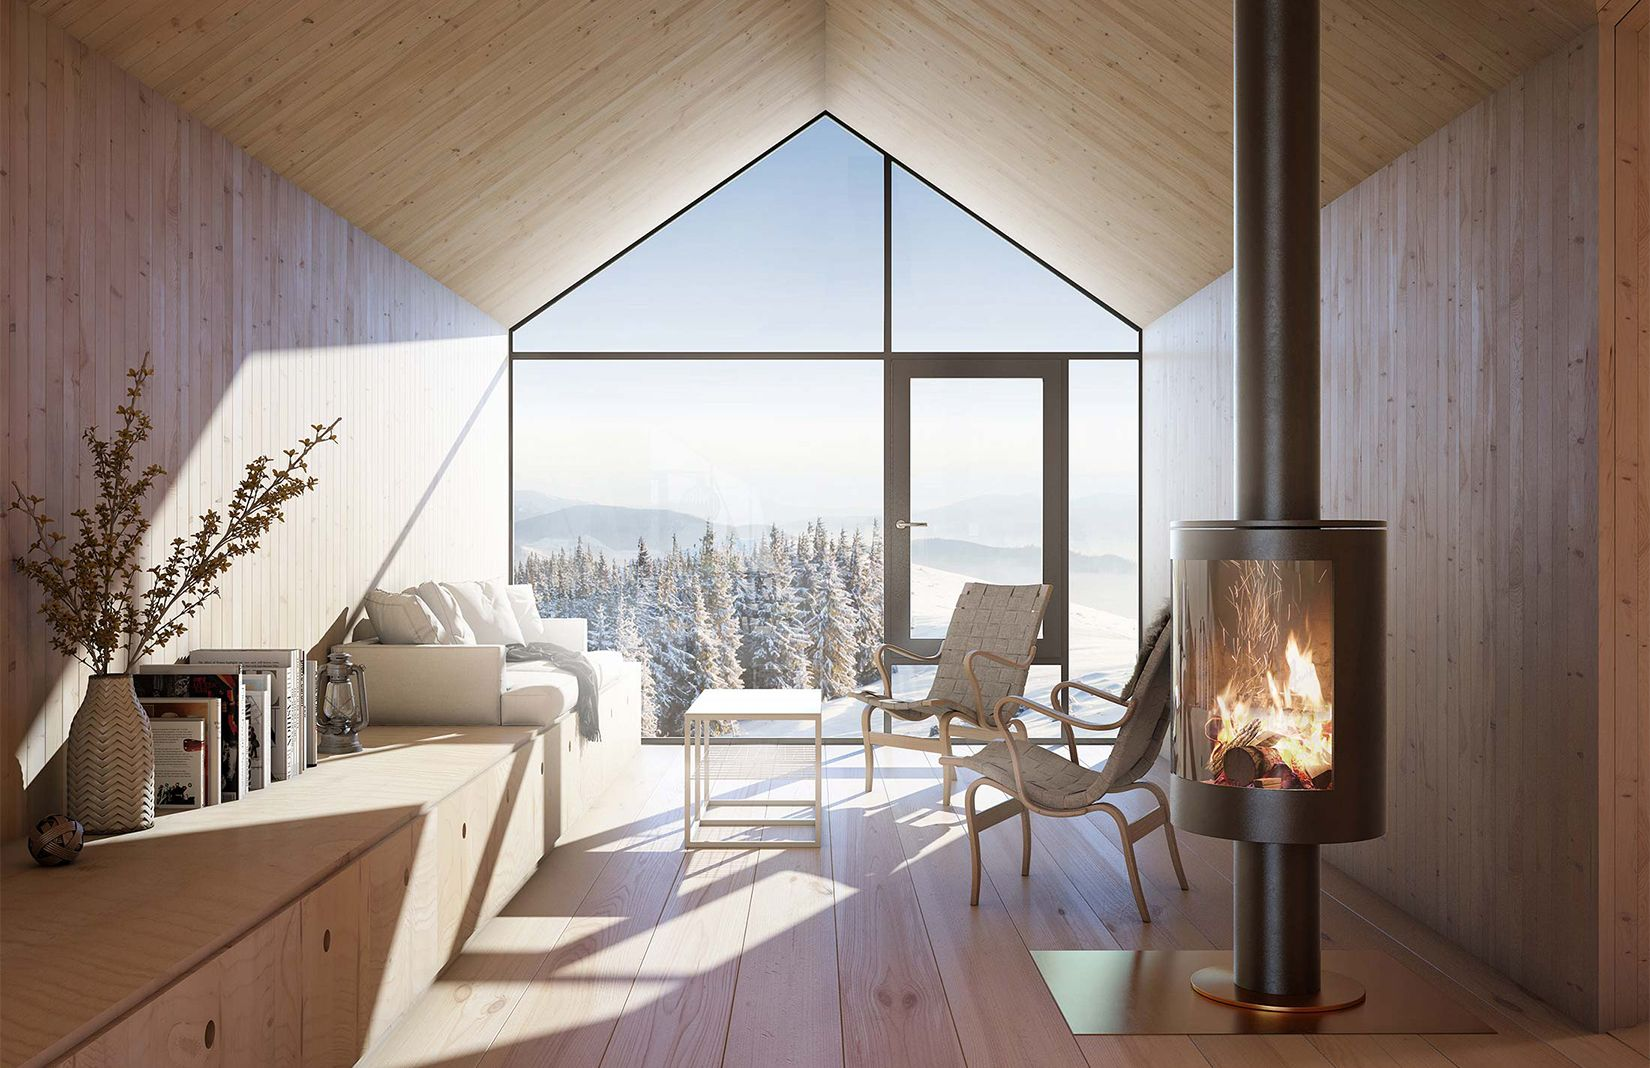 5 Striking Ski Chalets For Sale In Europe Right Now With Images